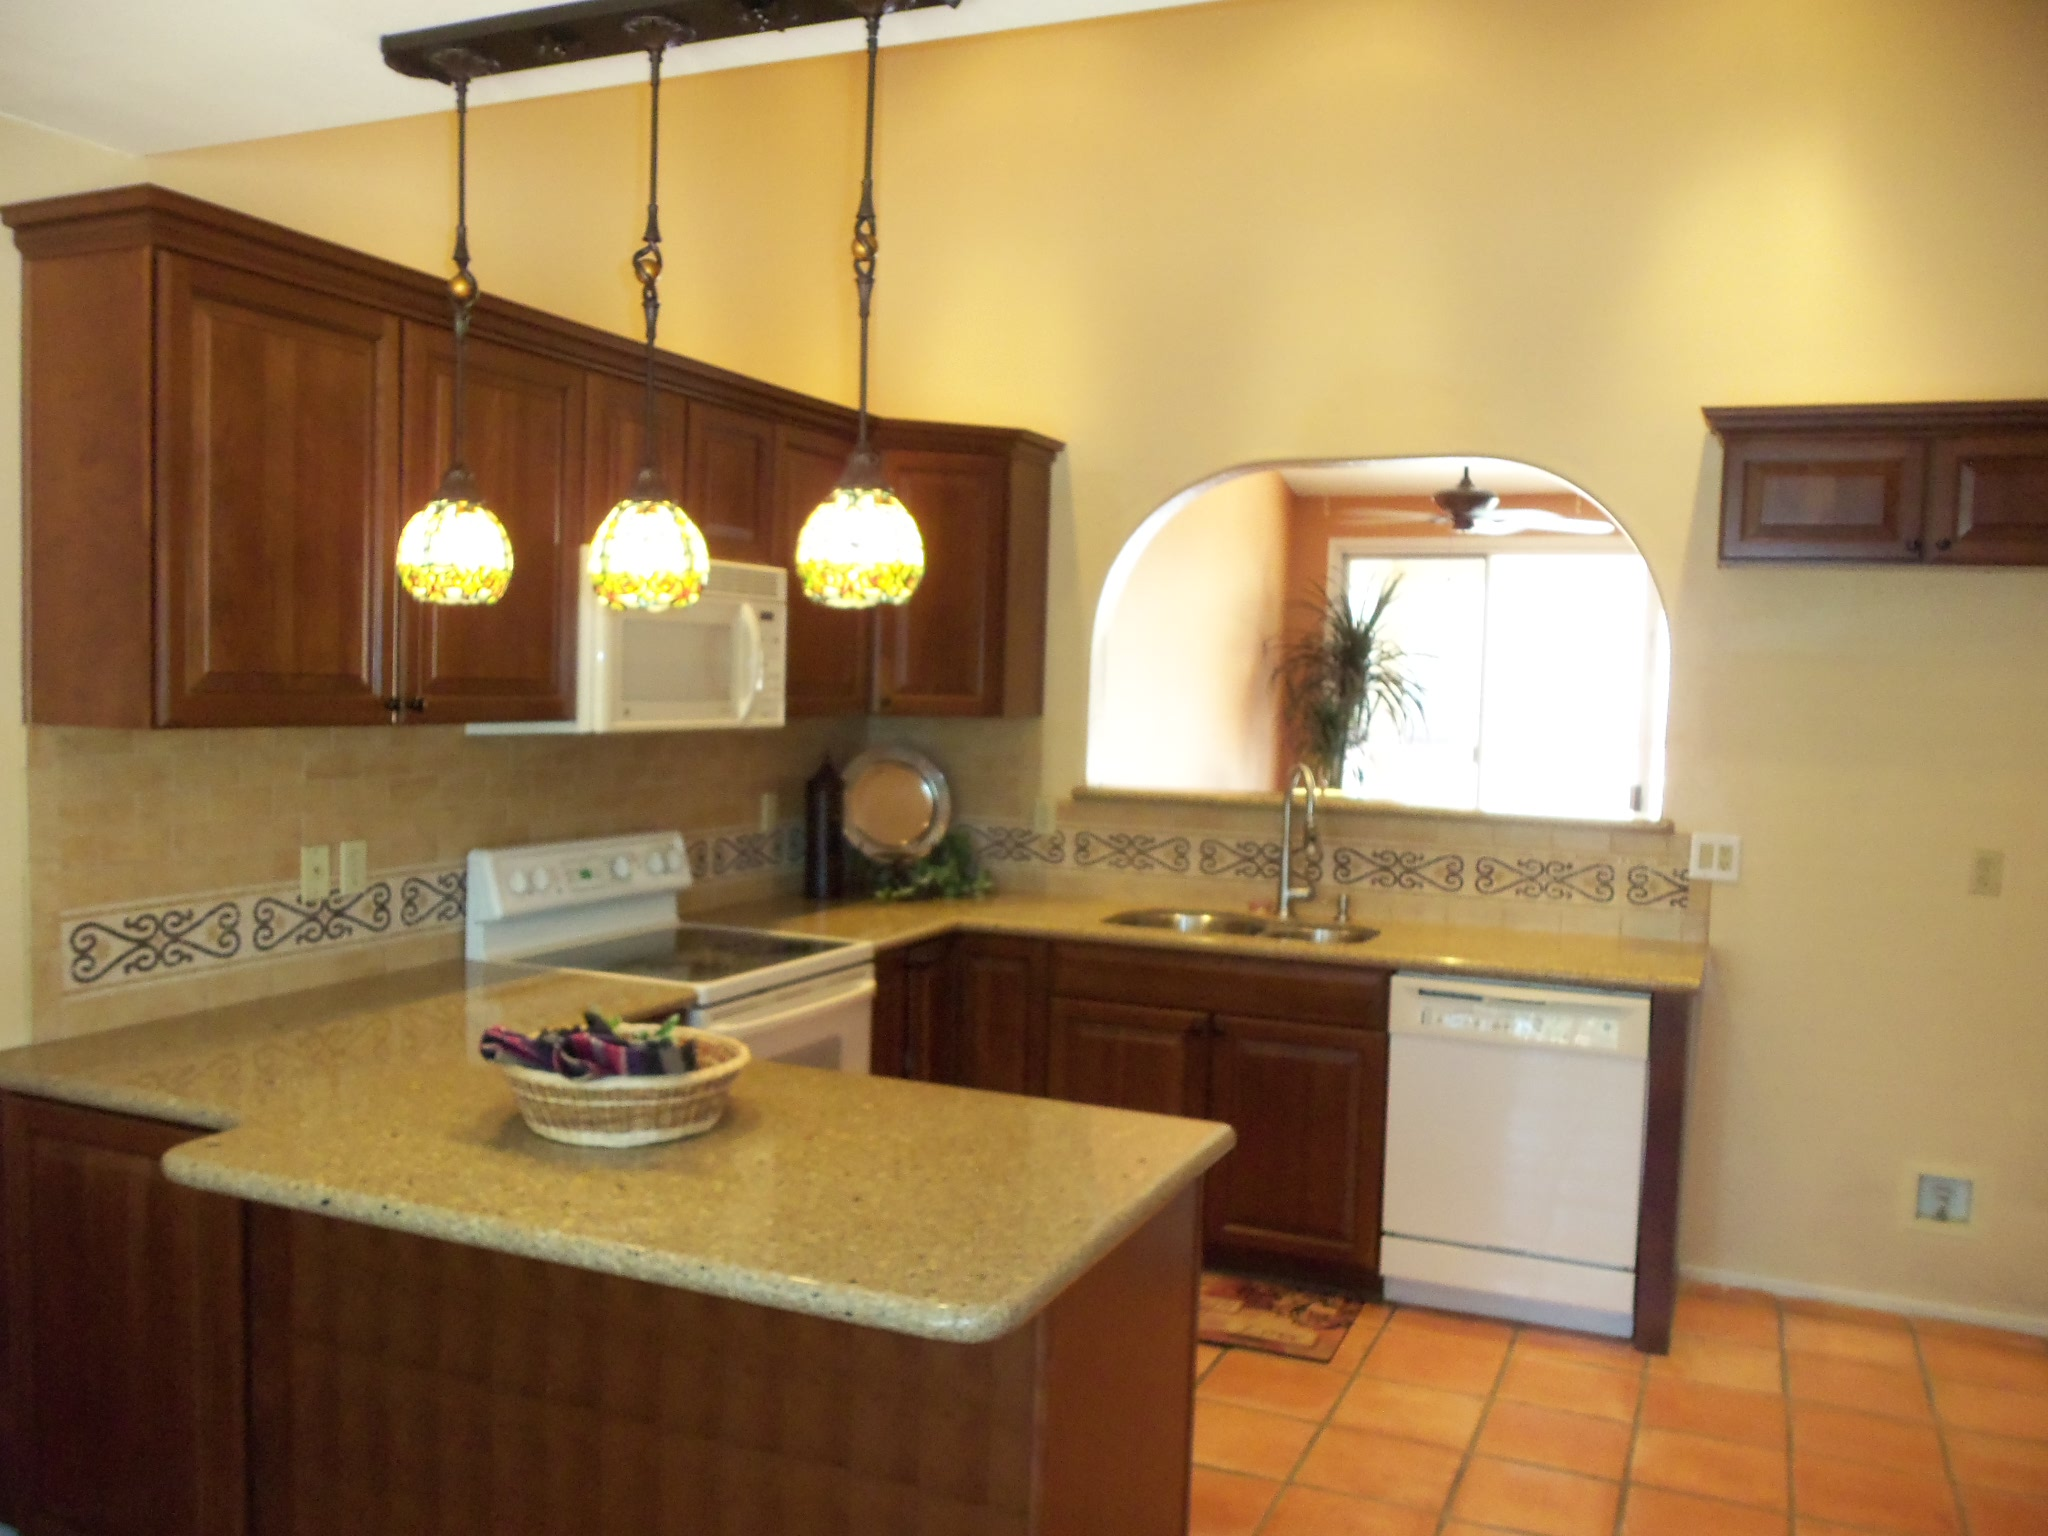 Spanish style 3 bedroom bank owned home under 200 000 in Bright kitchen